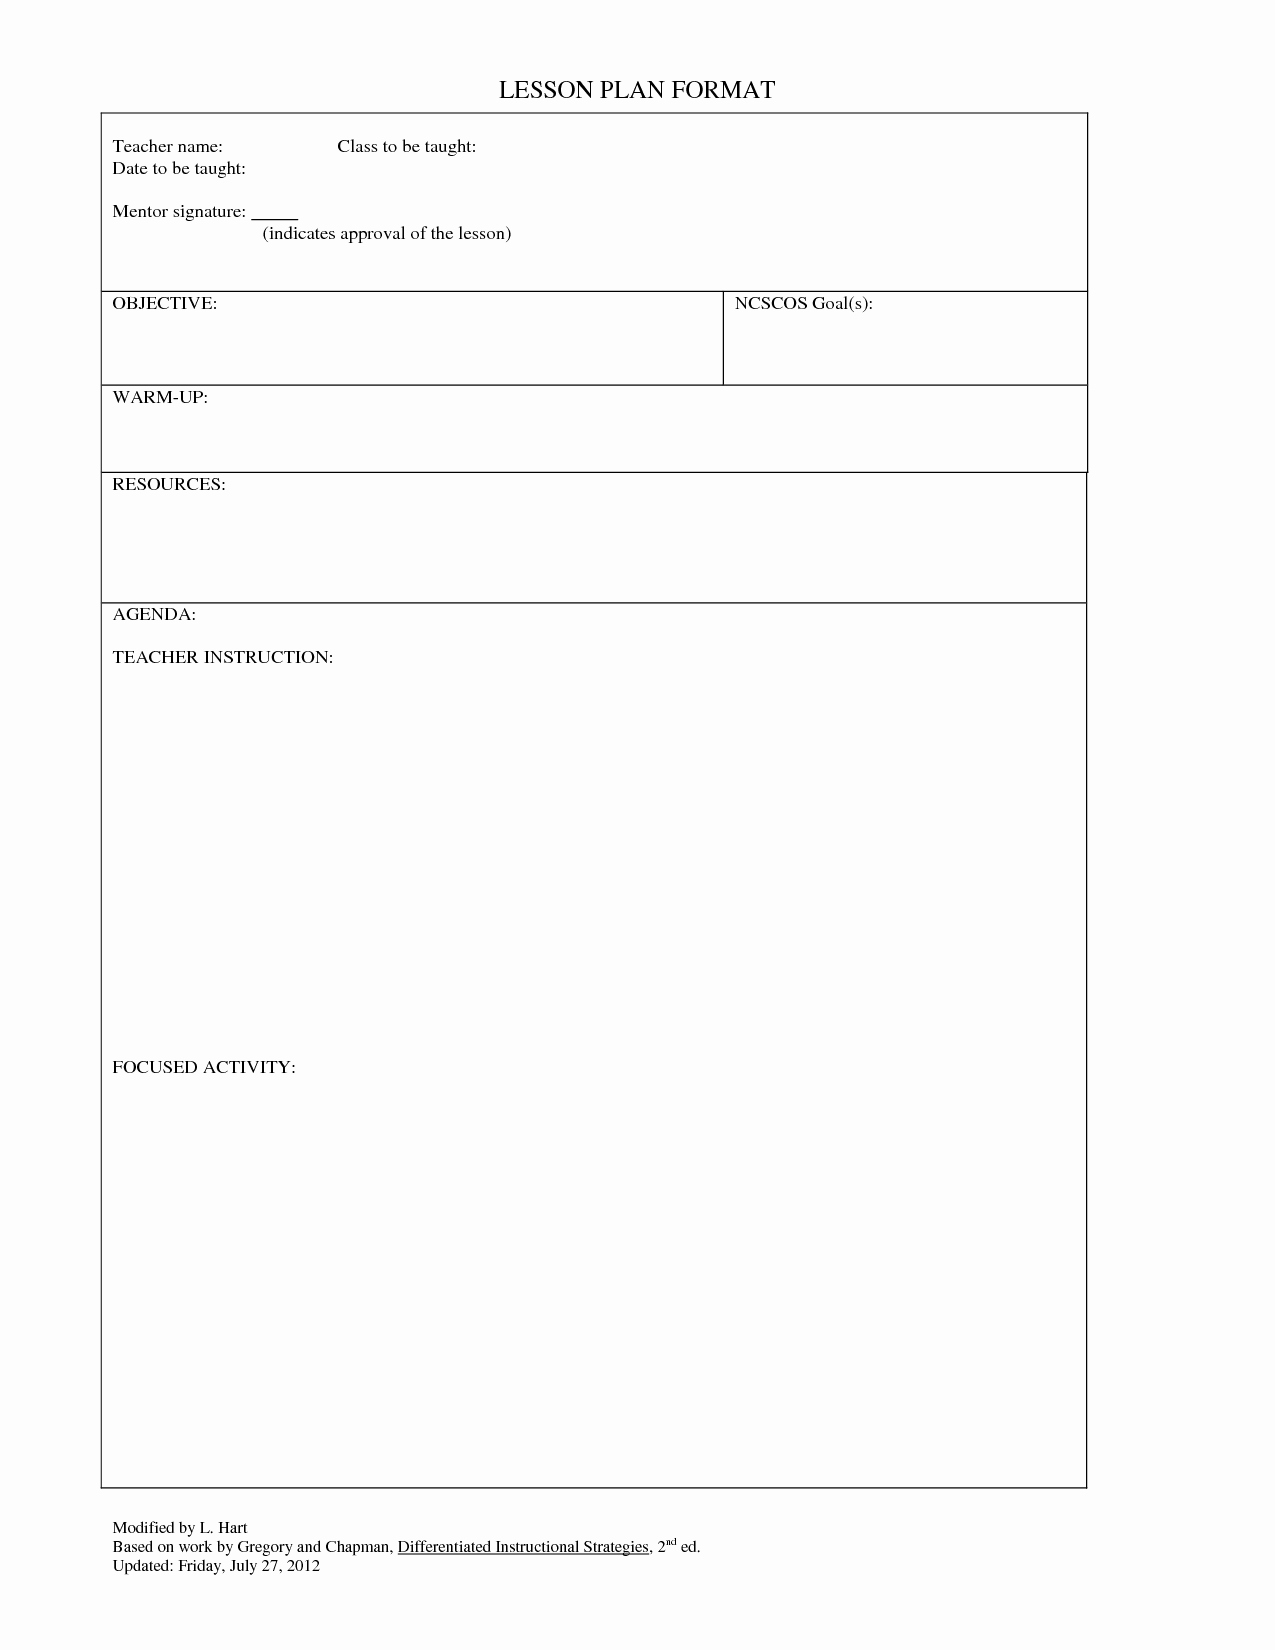 Editable Lesson Plan Template Awesome Blank Lesson Plan Template Lesson Plan for Gp Blank